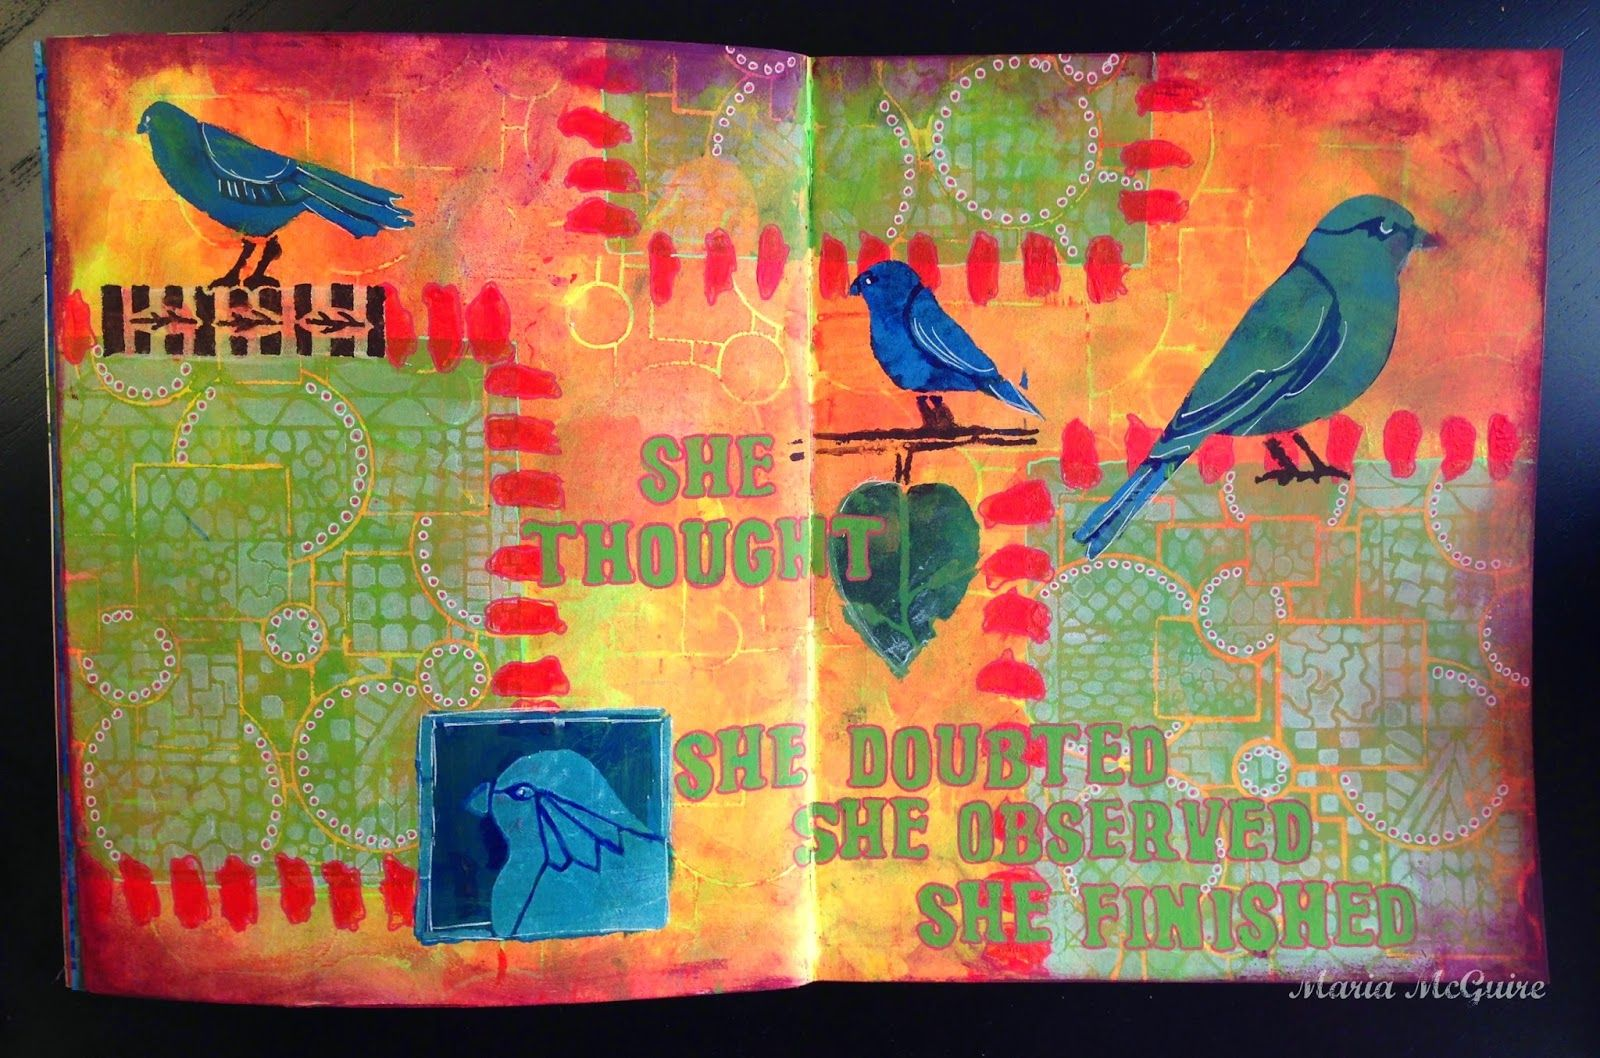 StencilGirl Talk: Art Journal Page with StencilGirl Stencils GALORE! by Maria; Jan 2015